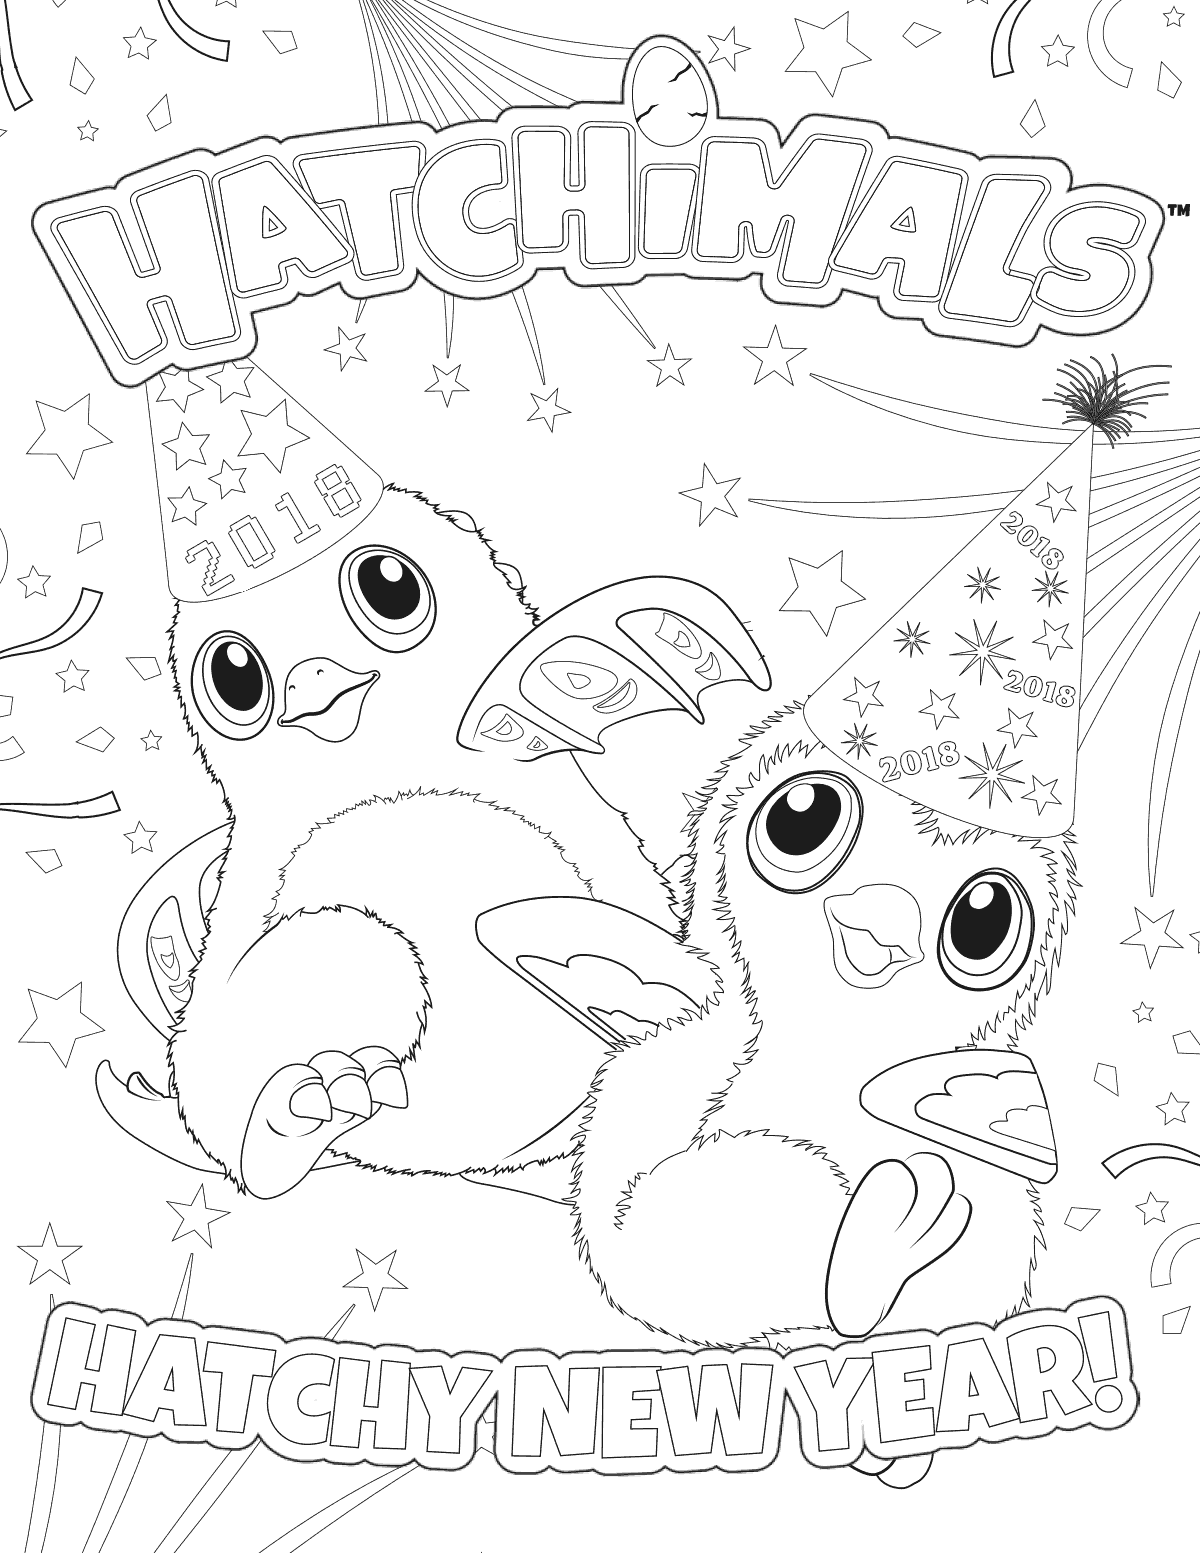 Hatchimals Happy New Year 2018 Coloring Page | ...And A ...